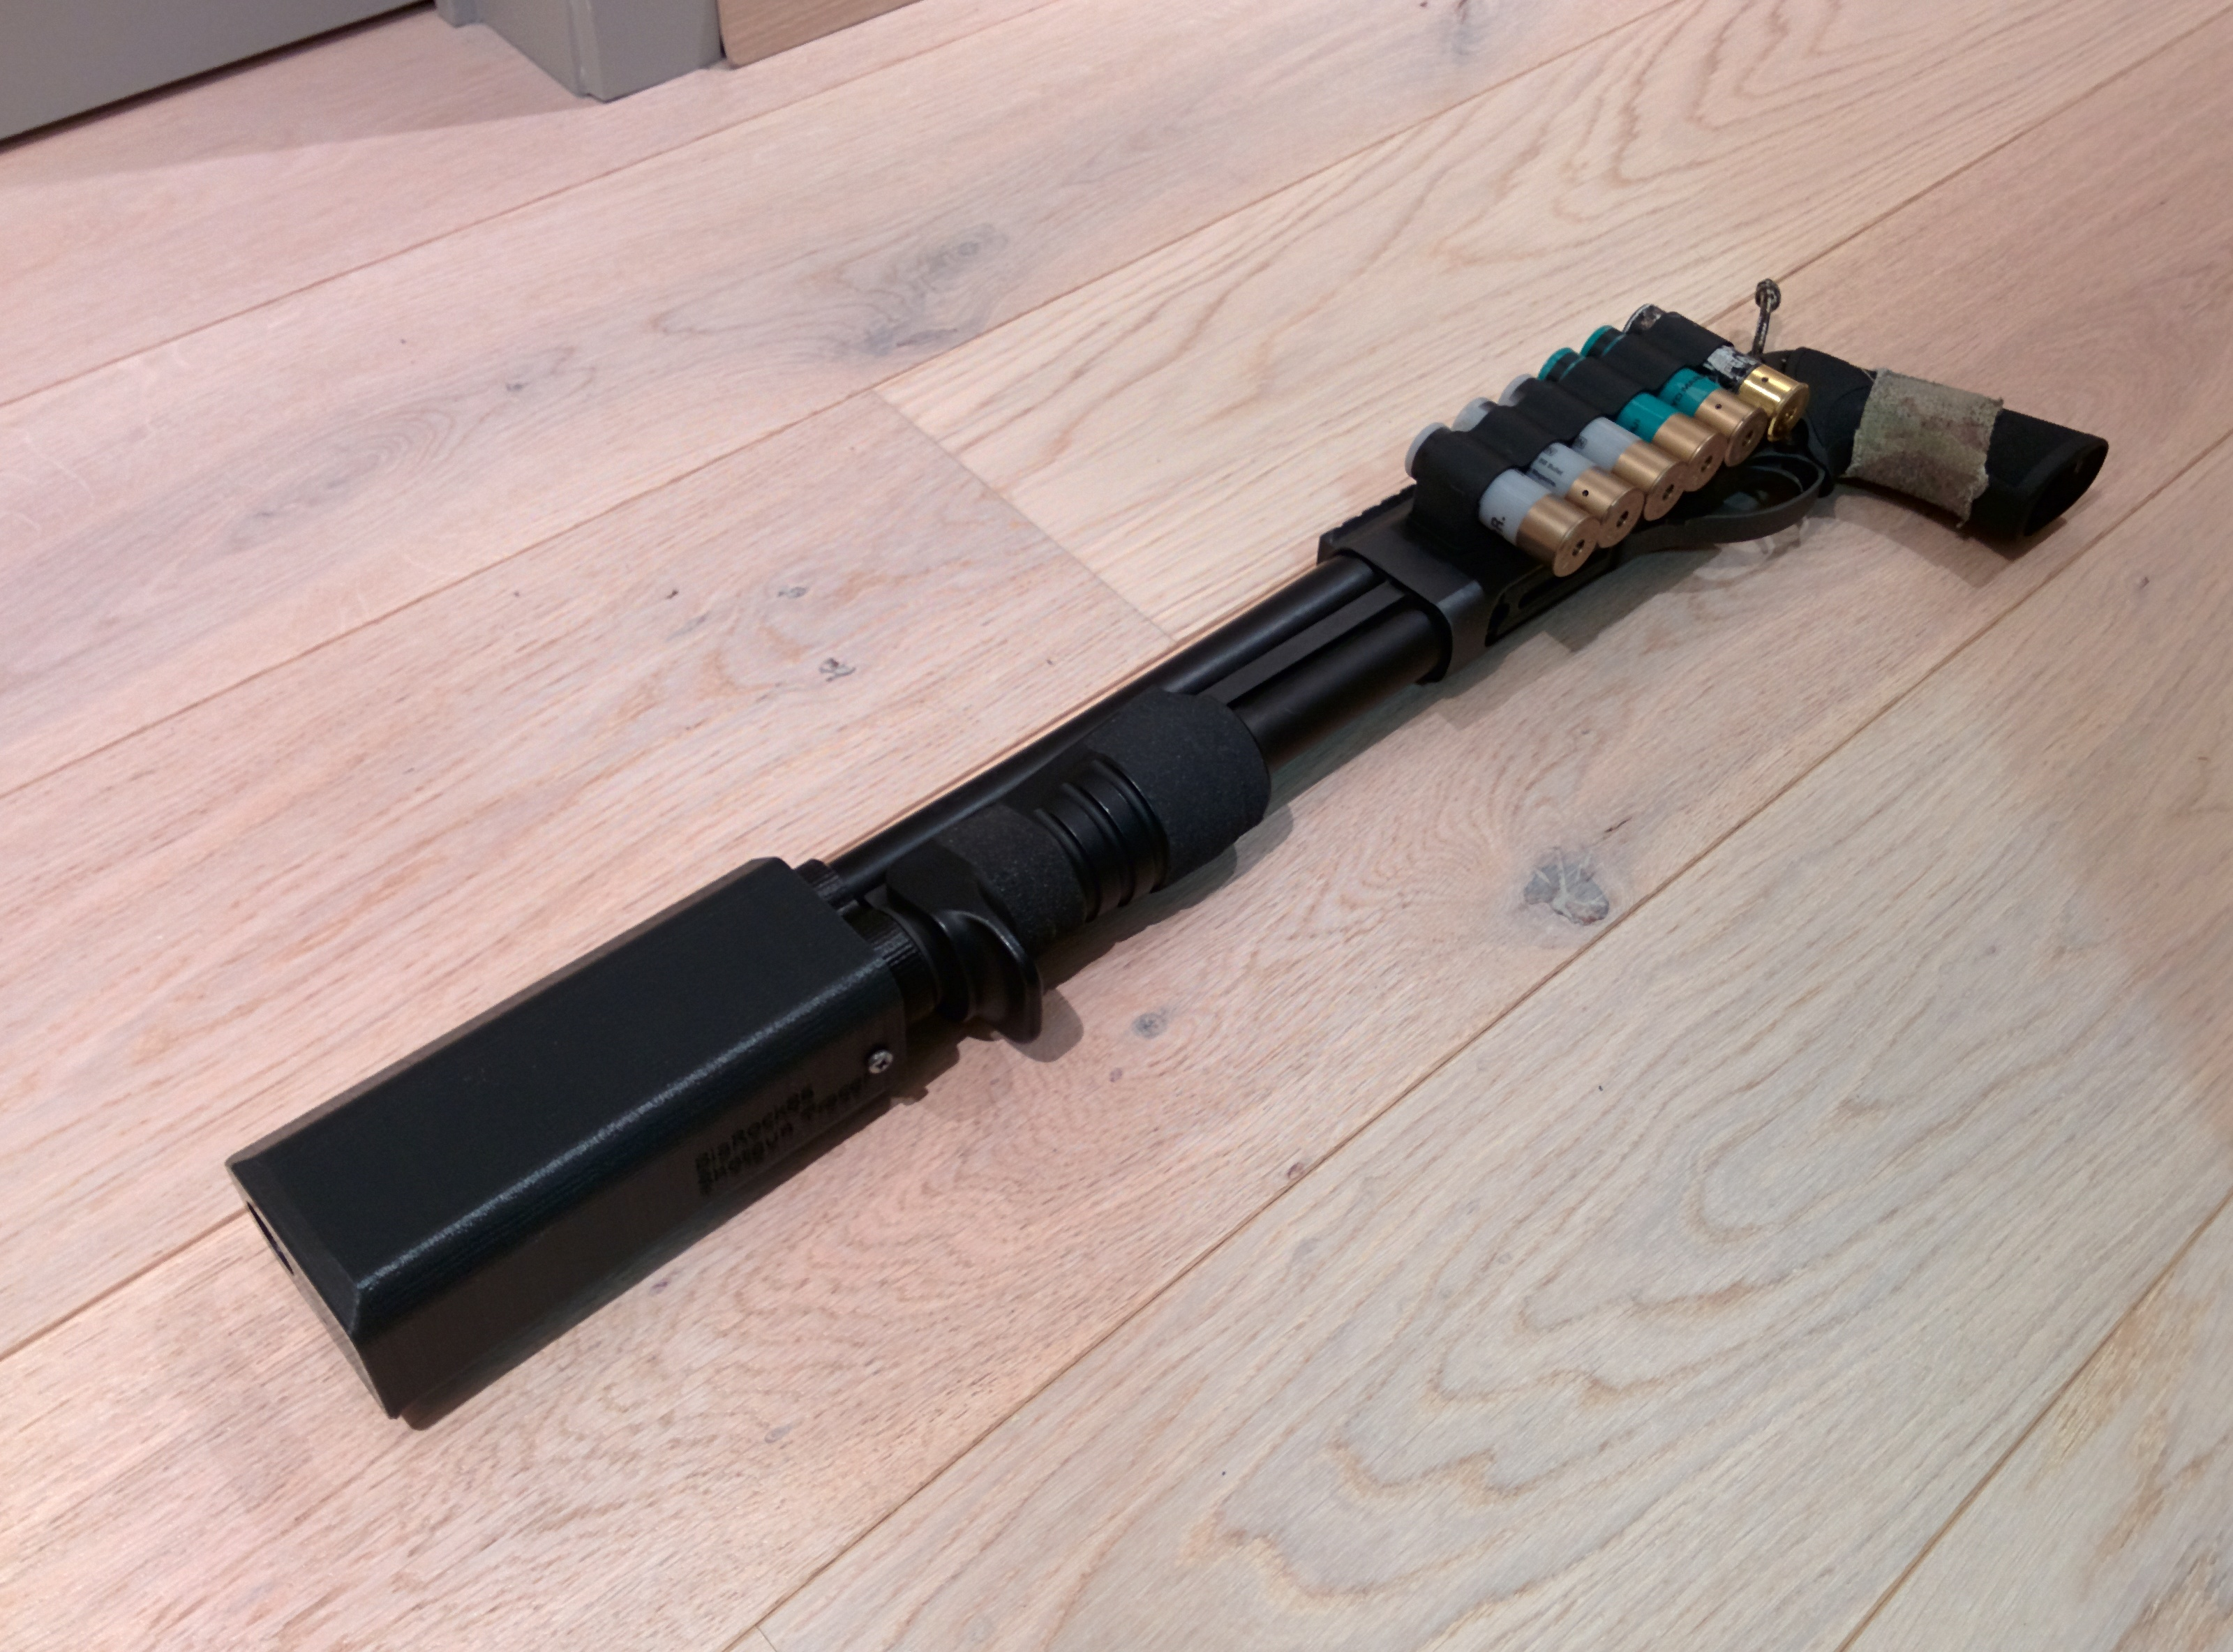 Airsoft M870 Breacher Tracer by BlaRock86 - Thingiverse